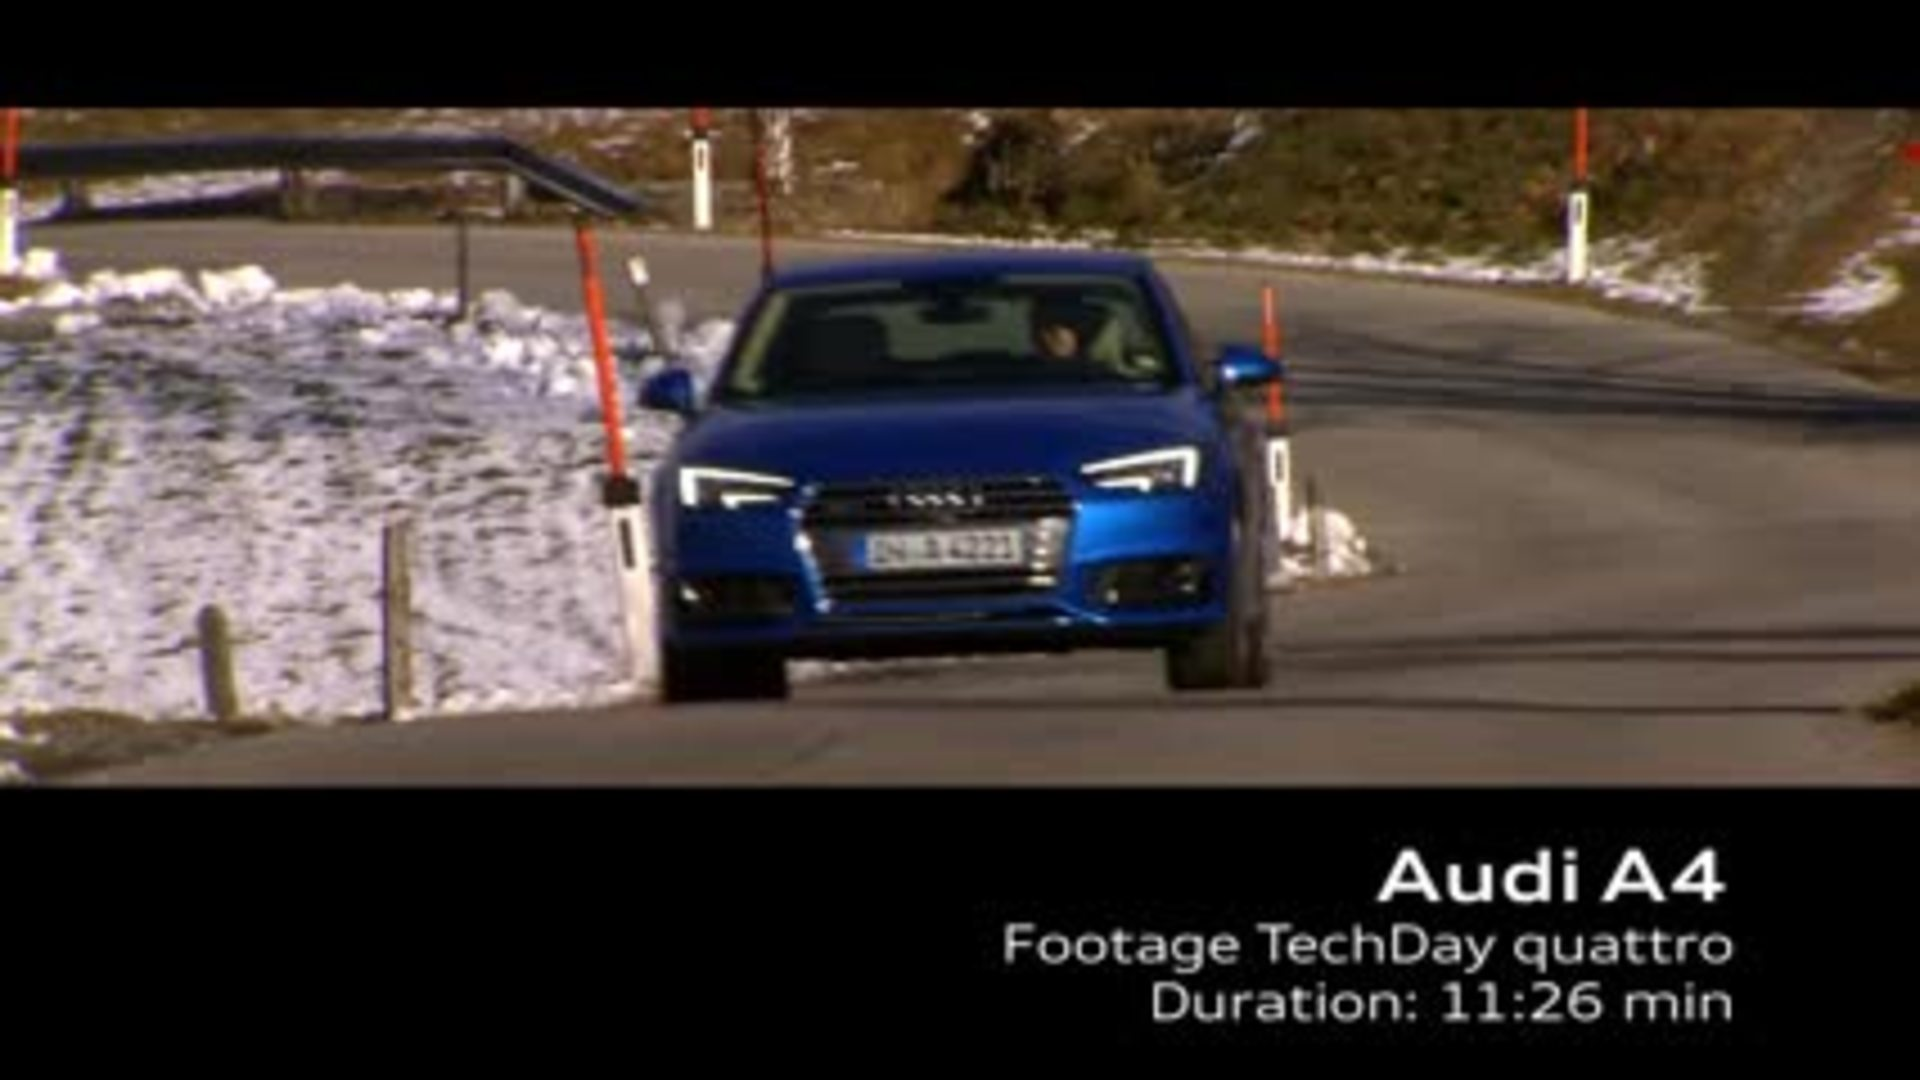 quattro with ultra technology - Footage